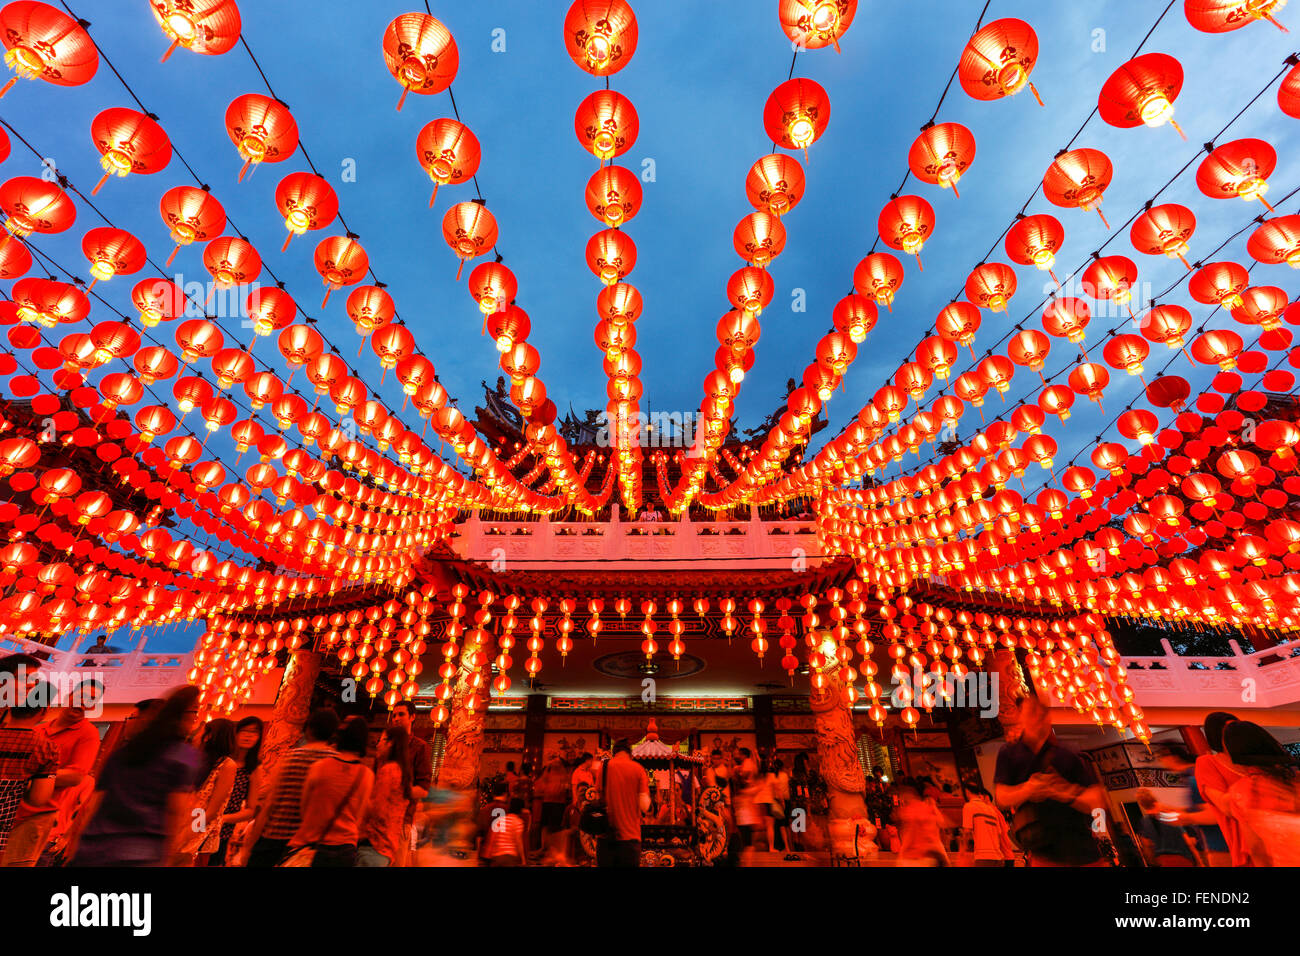 The Lanterns of Thean Hou temple during the Chinese New Year, Kuala Lumpur, Malaysia. - Stock Image